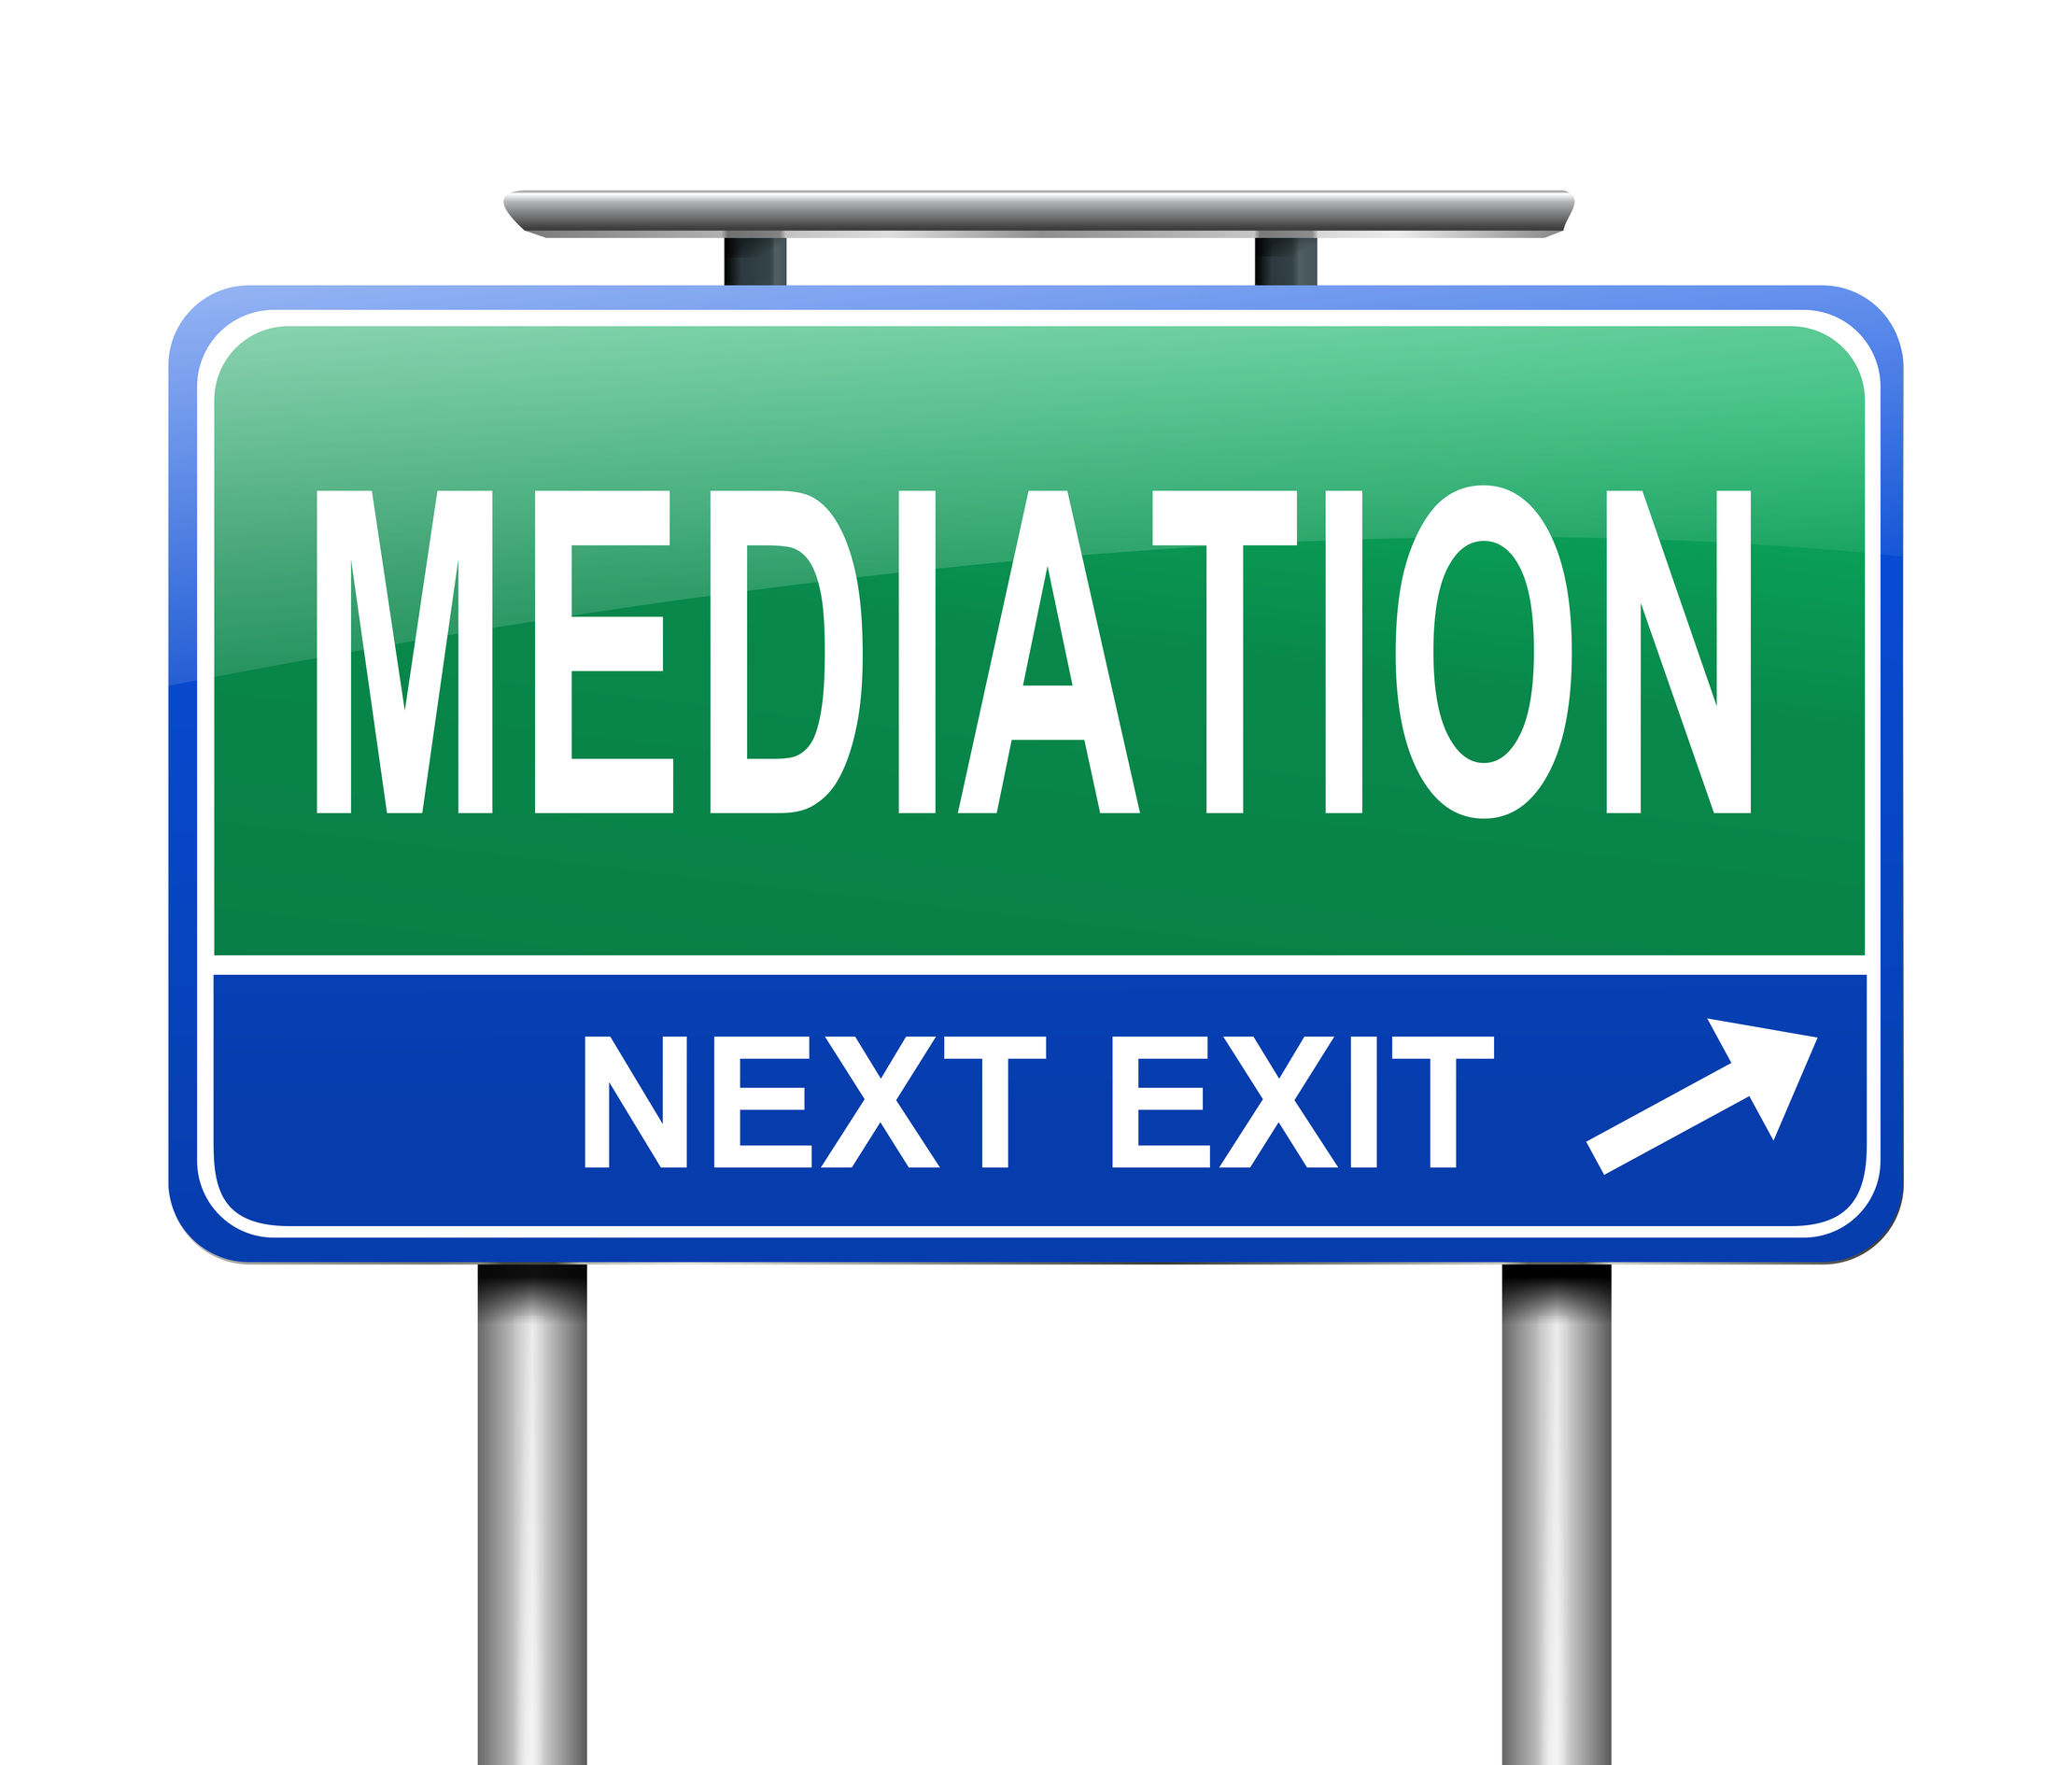 Mediation is designed to get parties to their own agreement